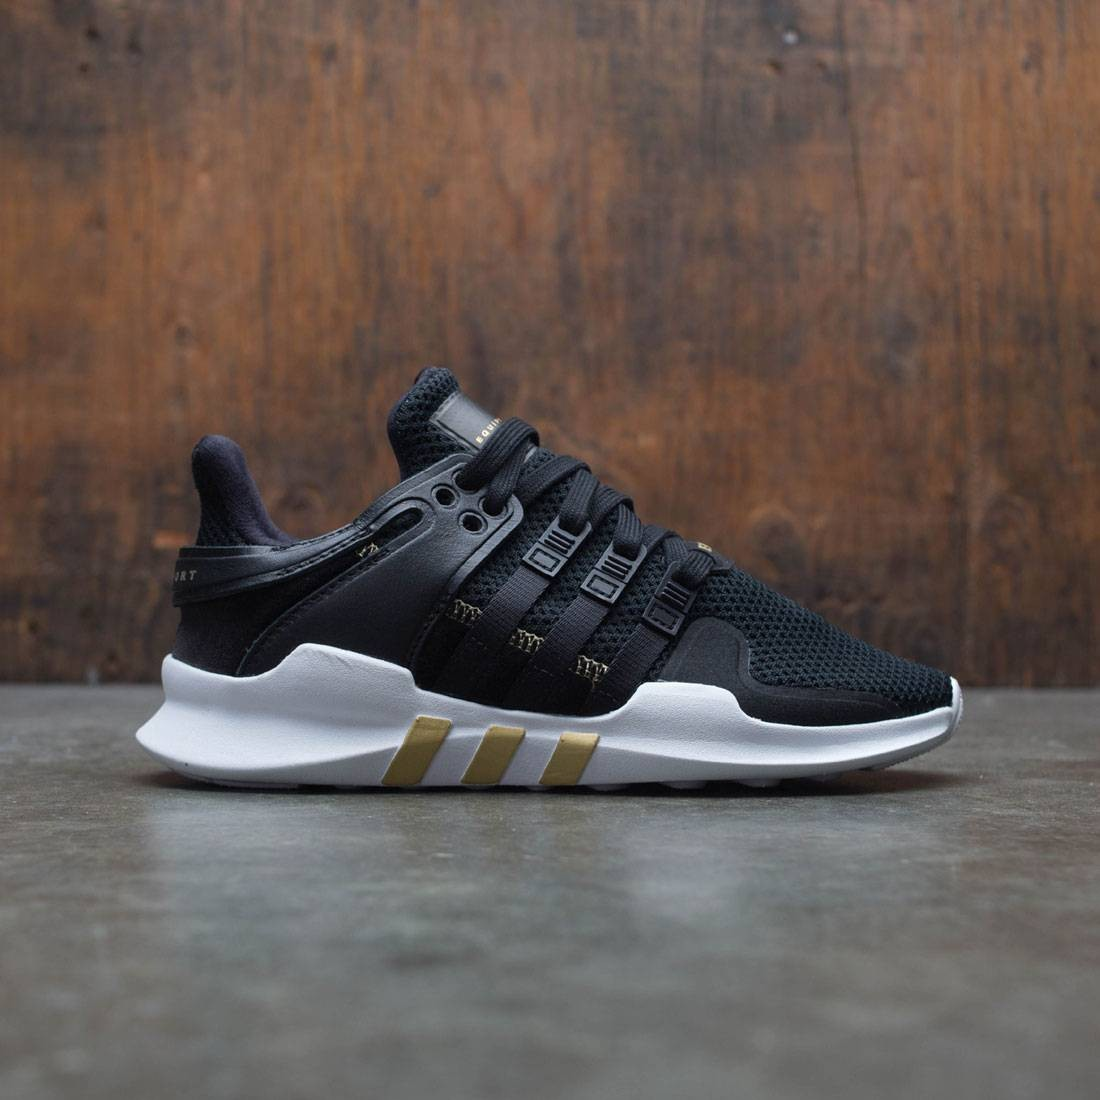 adidas women's eqt support adv sneakers